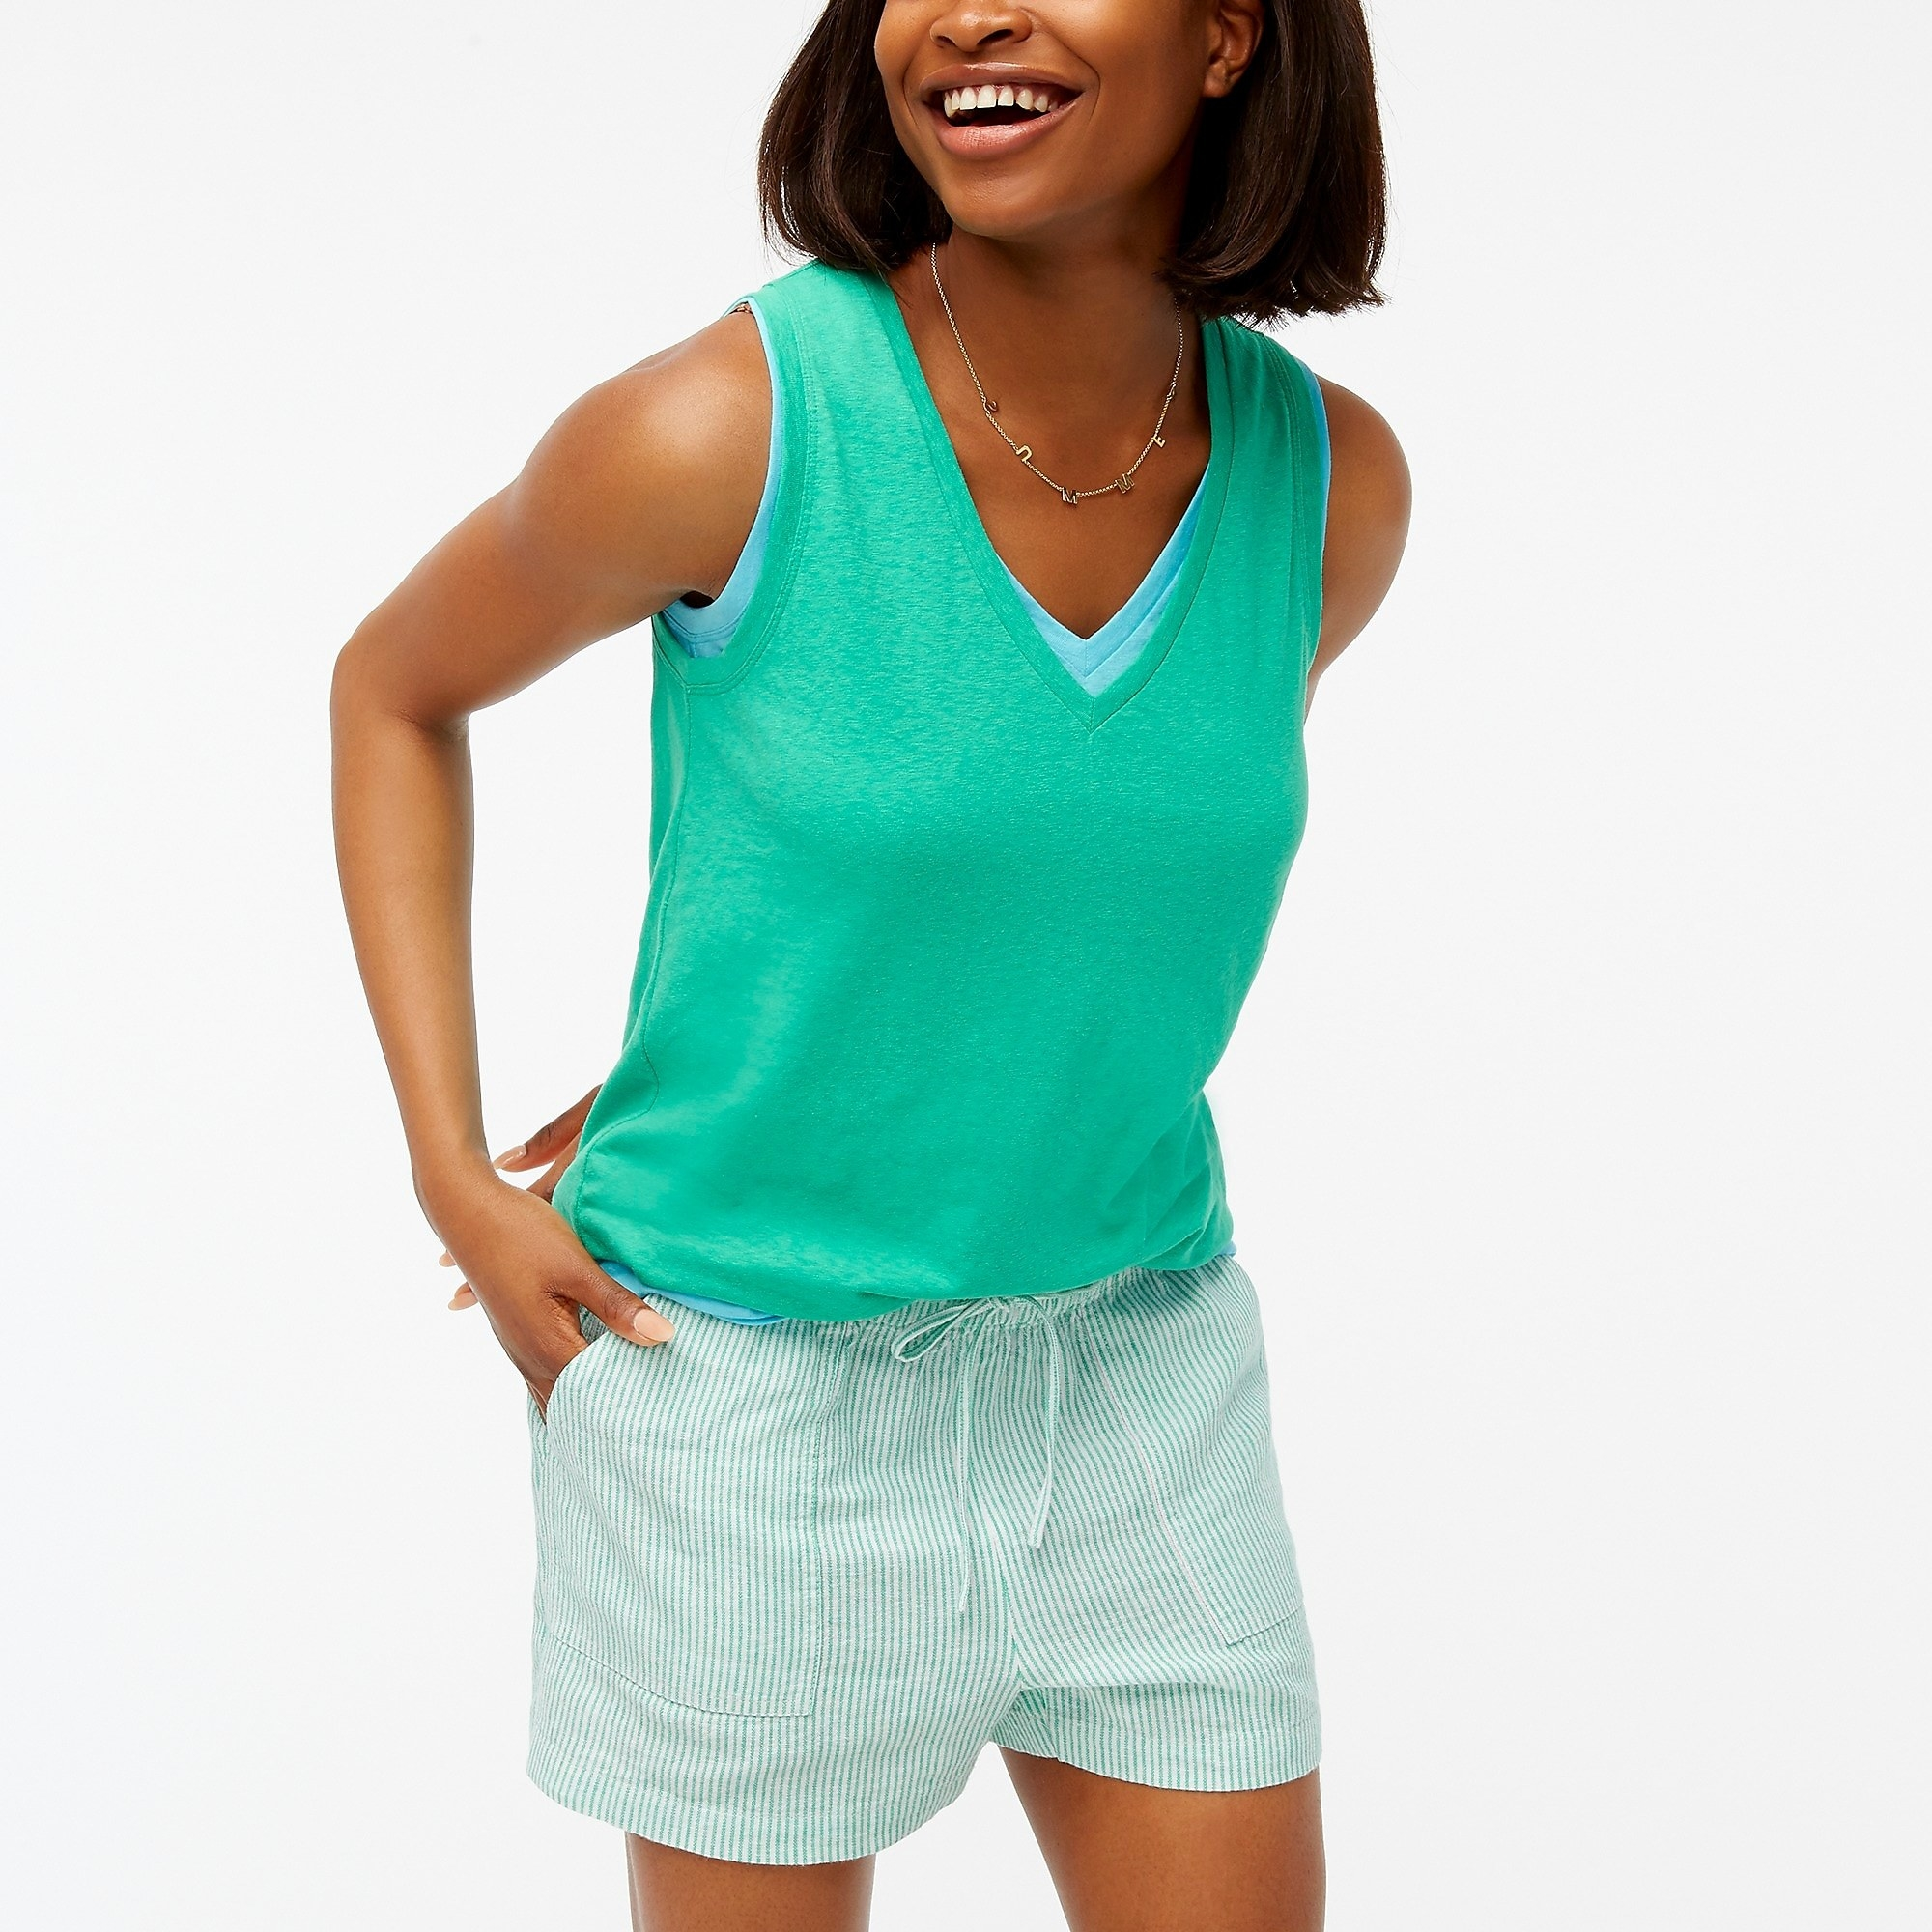 model wearing the tank in green with shorts